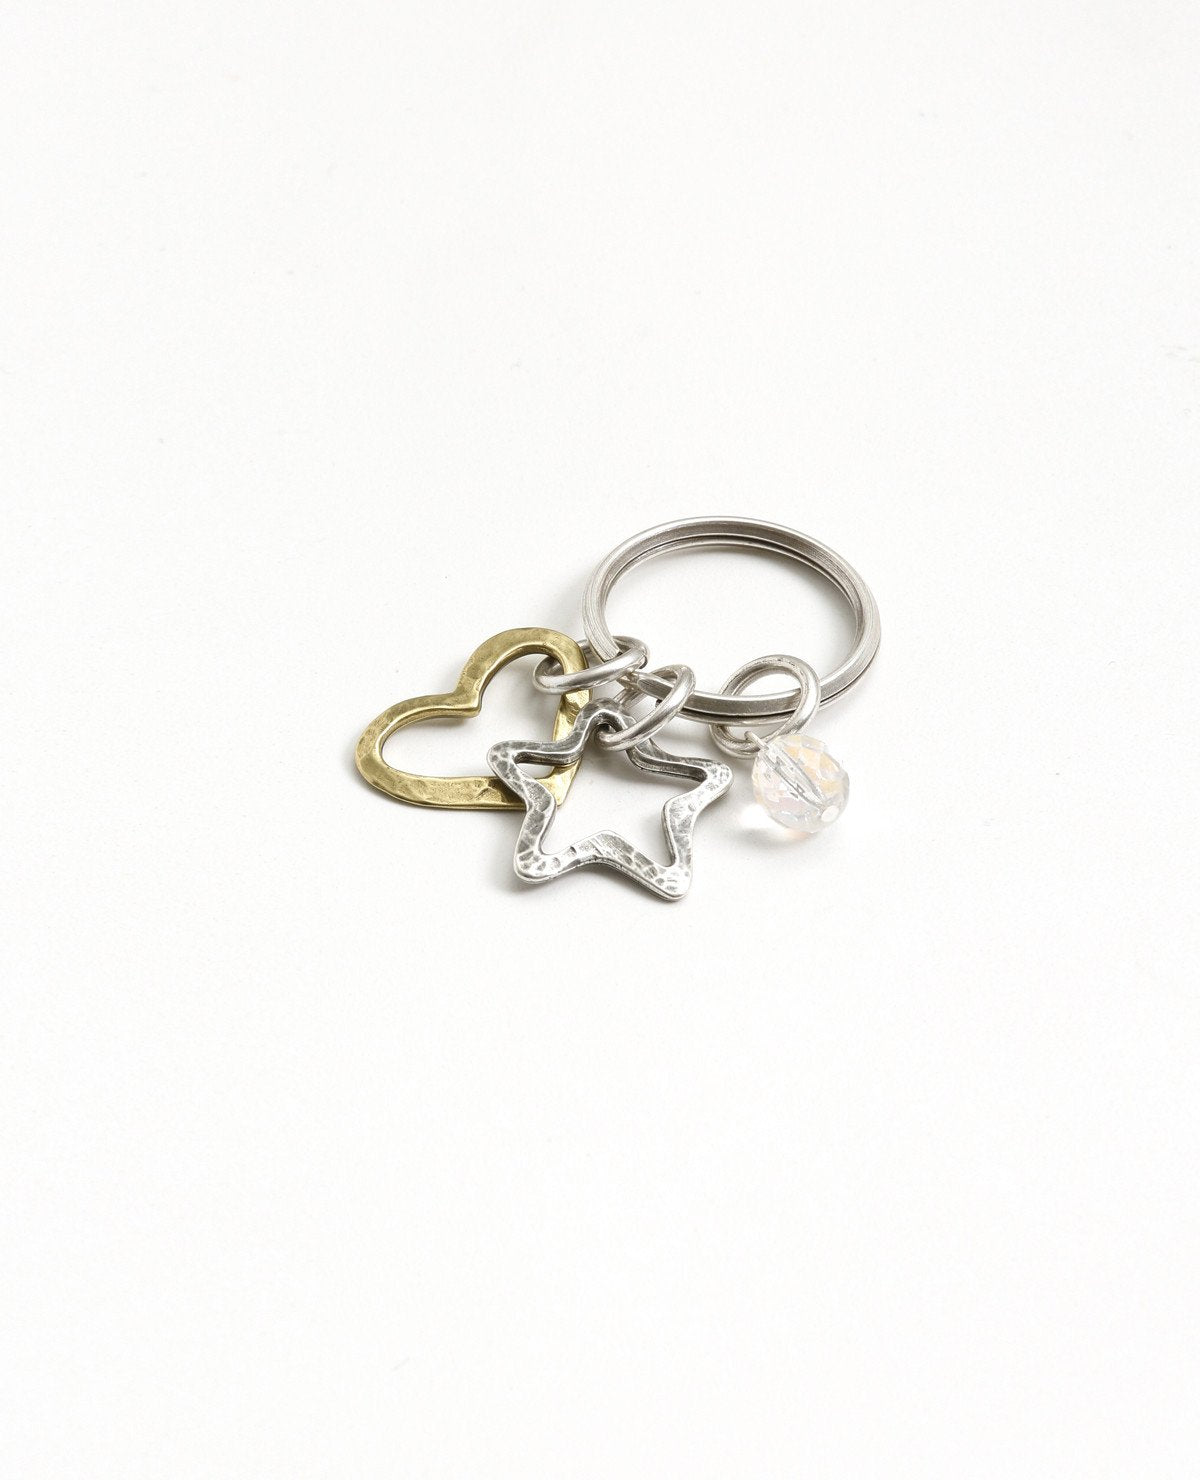 An original and special keychain, designed as a ring upon which hang a heart, a star and a crystal-like bead. The keychain is coated in sterling silver except for the star which is coated in brass, making for a magnificent color combination. Makes a fun gift, for her or him, for any occasion you wish to bring joy with a special present.  Length: 6 cm  Width: 3 cm